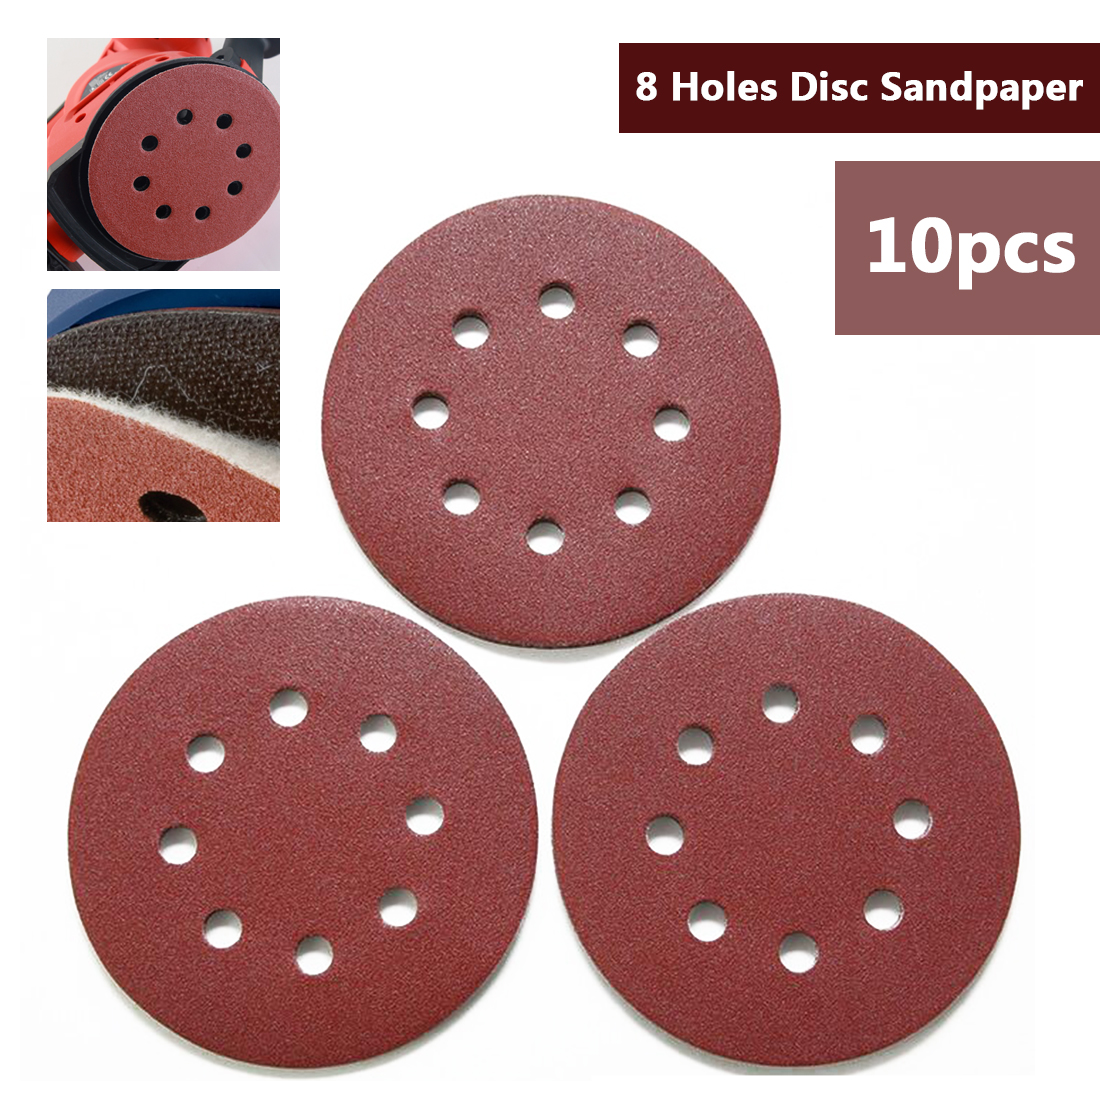 10pcs 8 Hole Sandpaper Pads Set 125mm 5